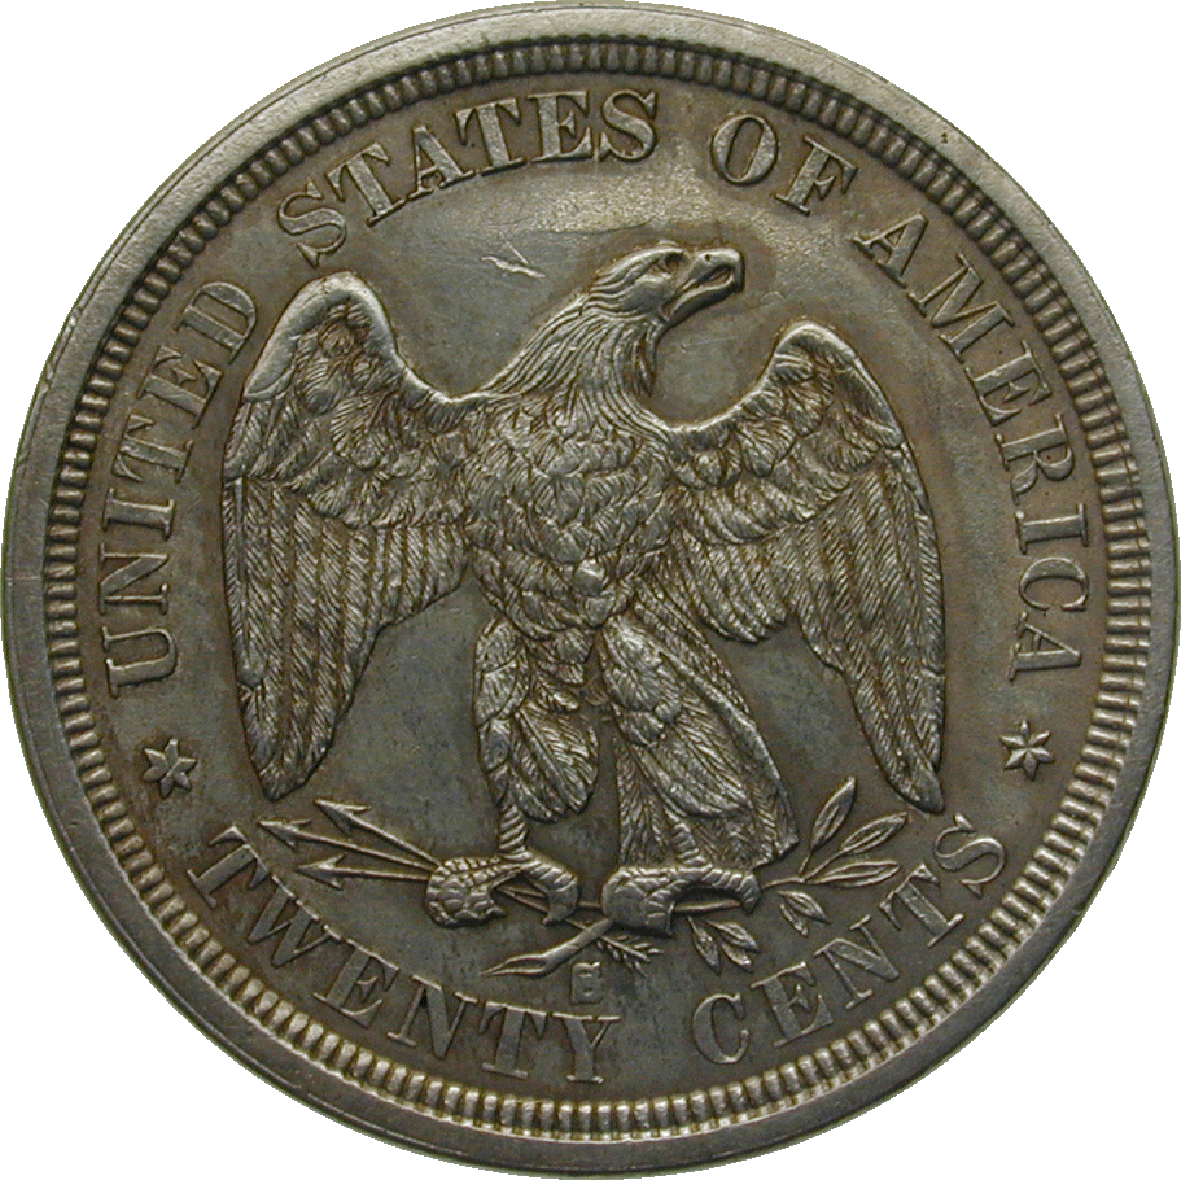 United States of America, 20 Cents 1875 (reverse)